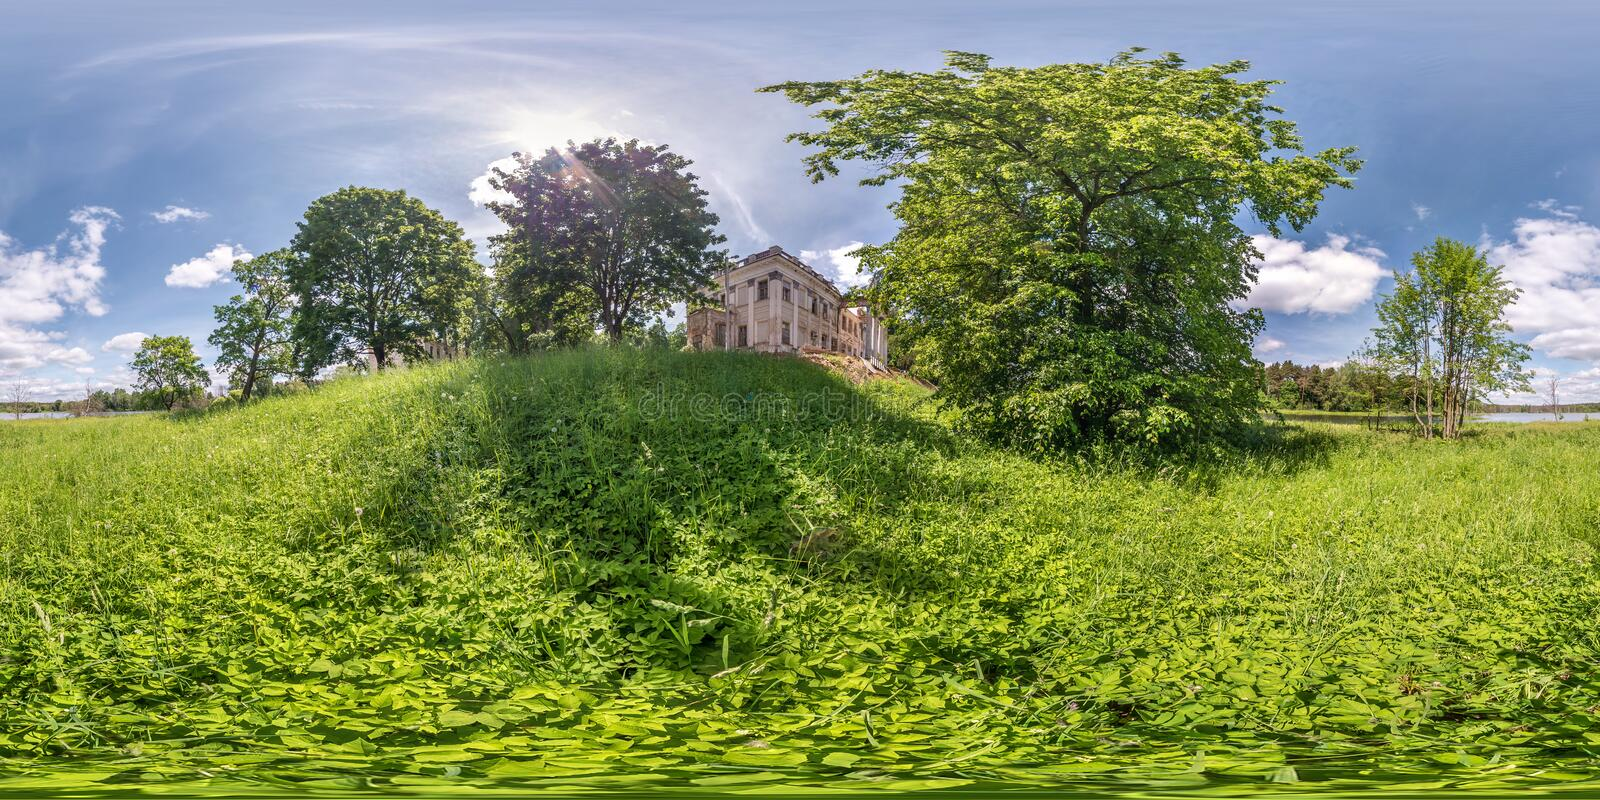 Full seamless spherical hdri panorama 360 degrees angle view near stone abandoned ruined palace and park complex in. Equirectangular projection, VR AR virtual stock photos